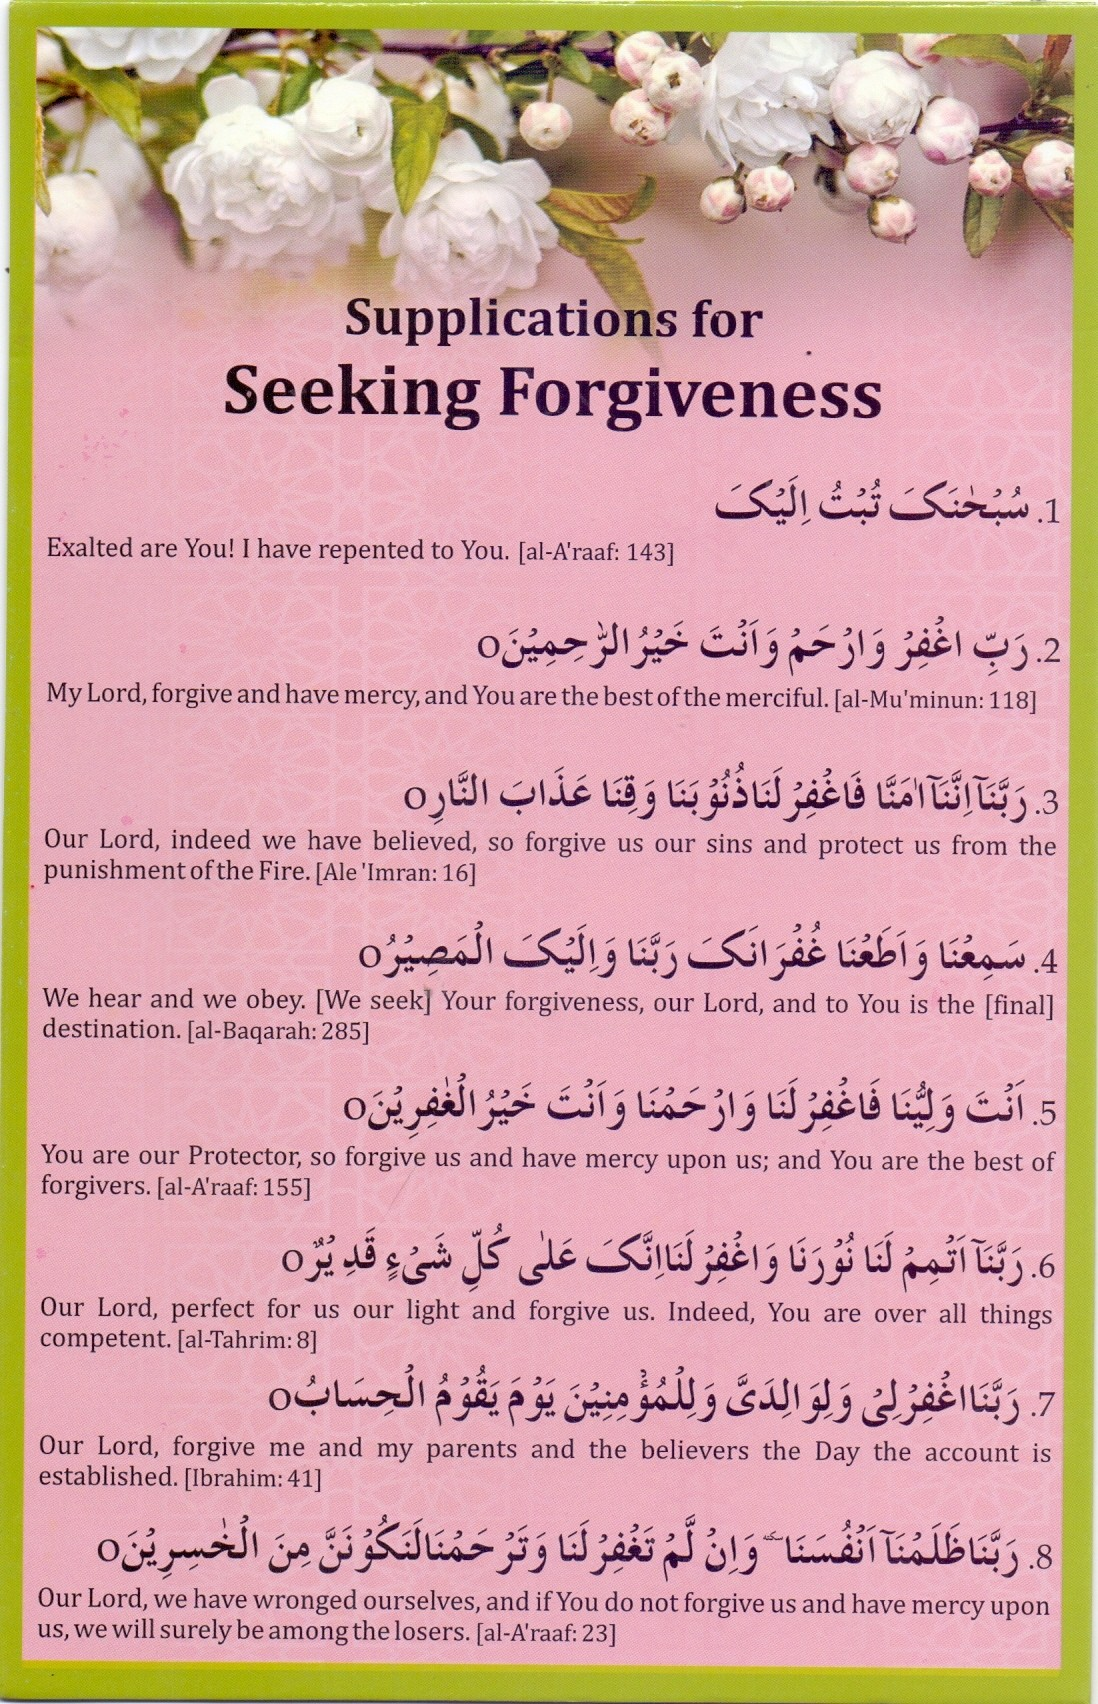 Supplication for Seeking Forgiveness